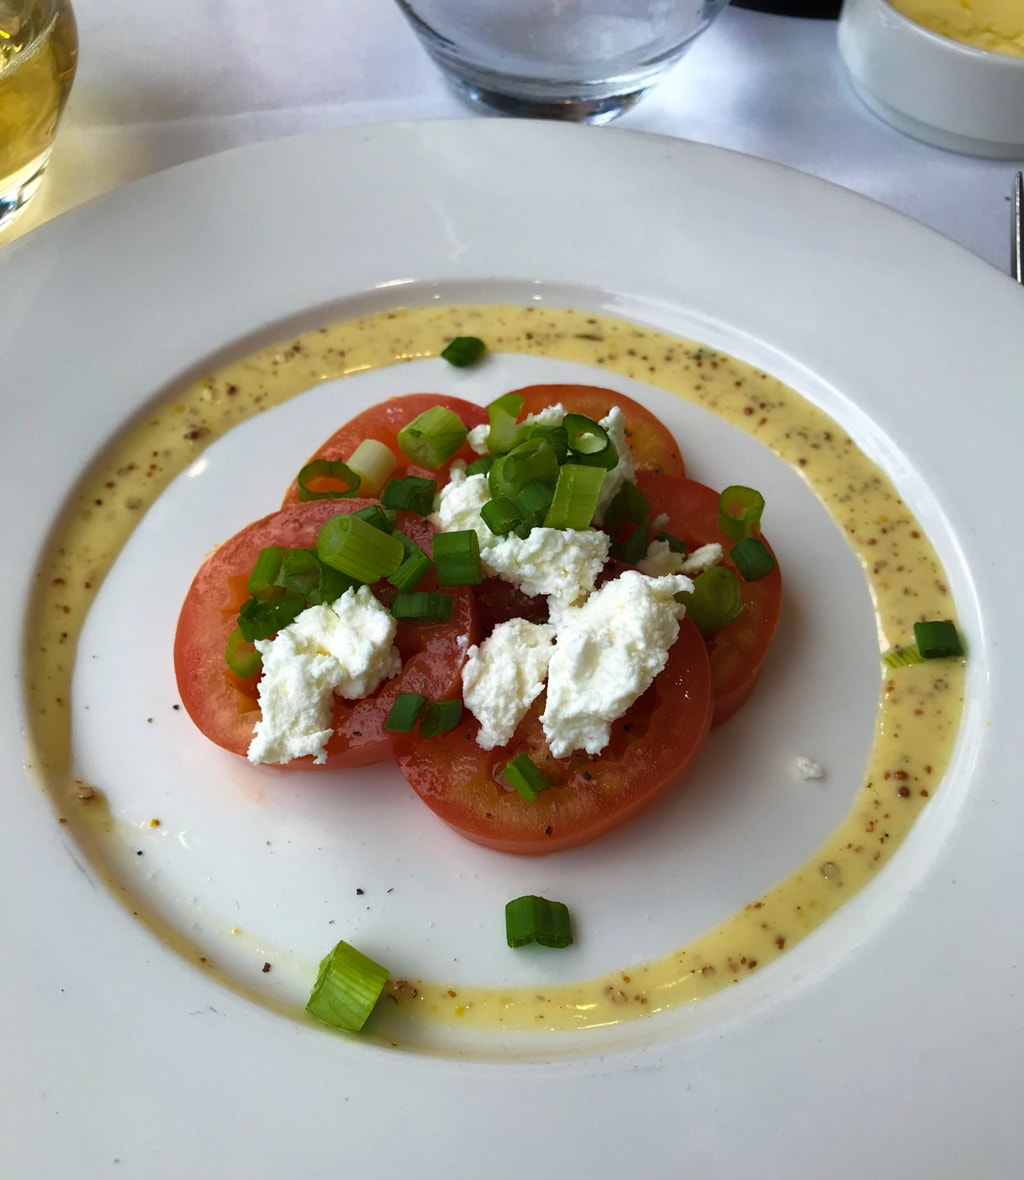 Tomatoes and cheese with vinaigrette on white plate.